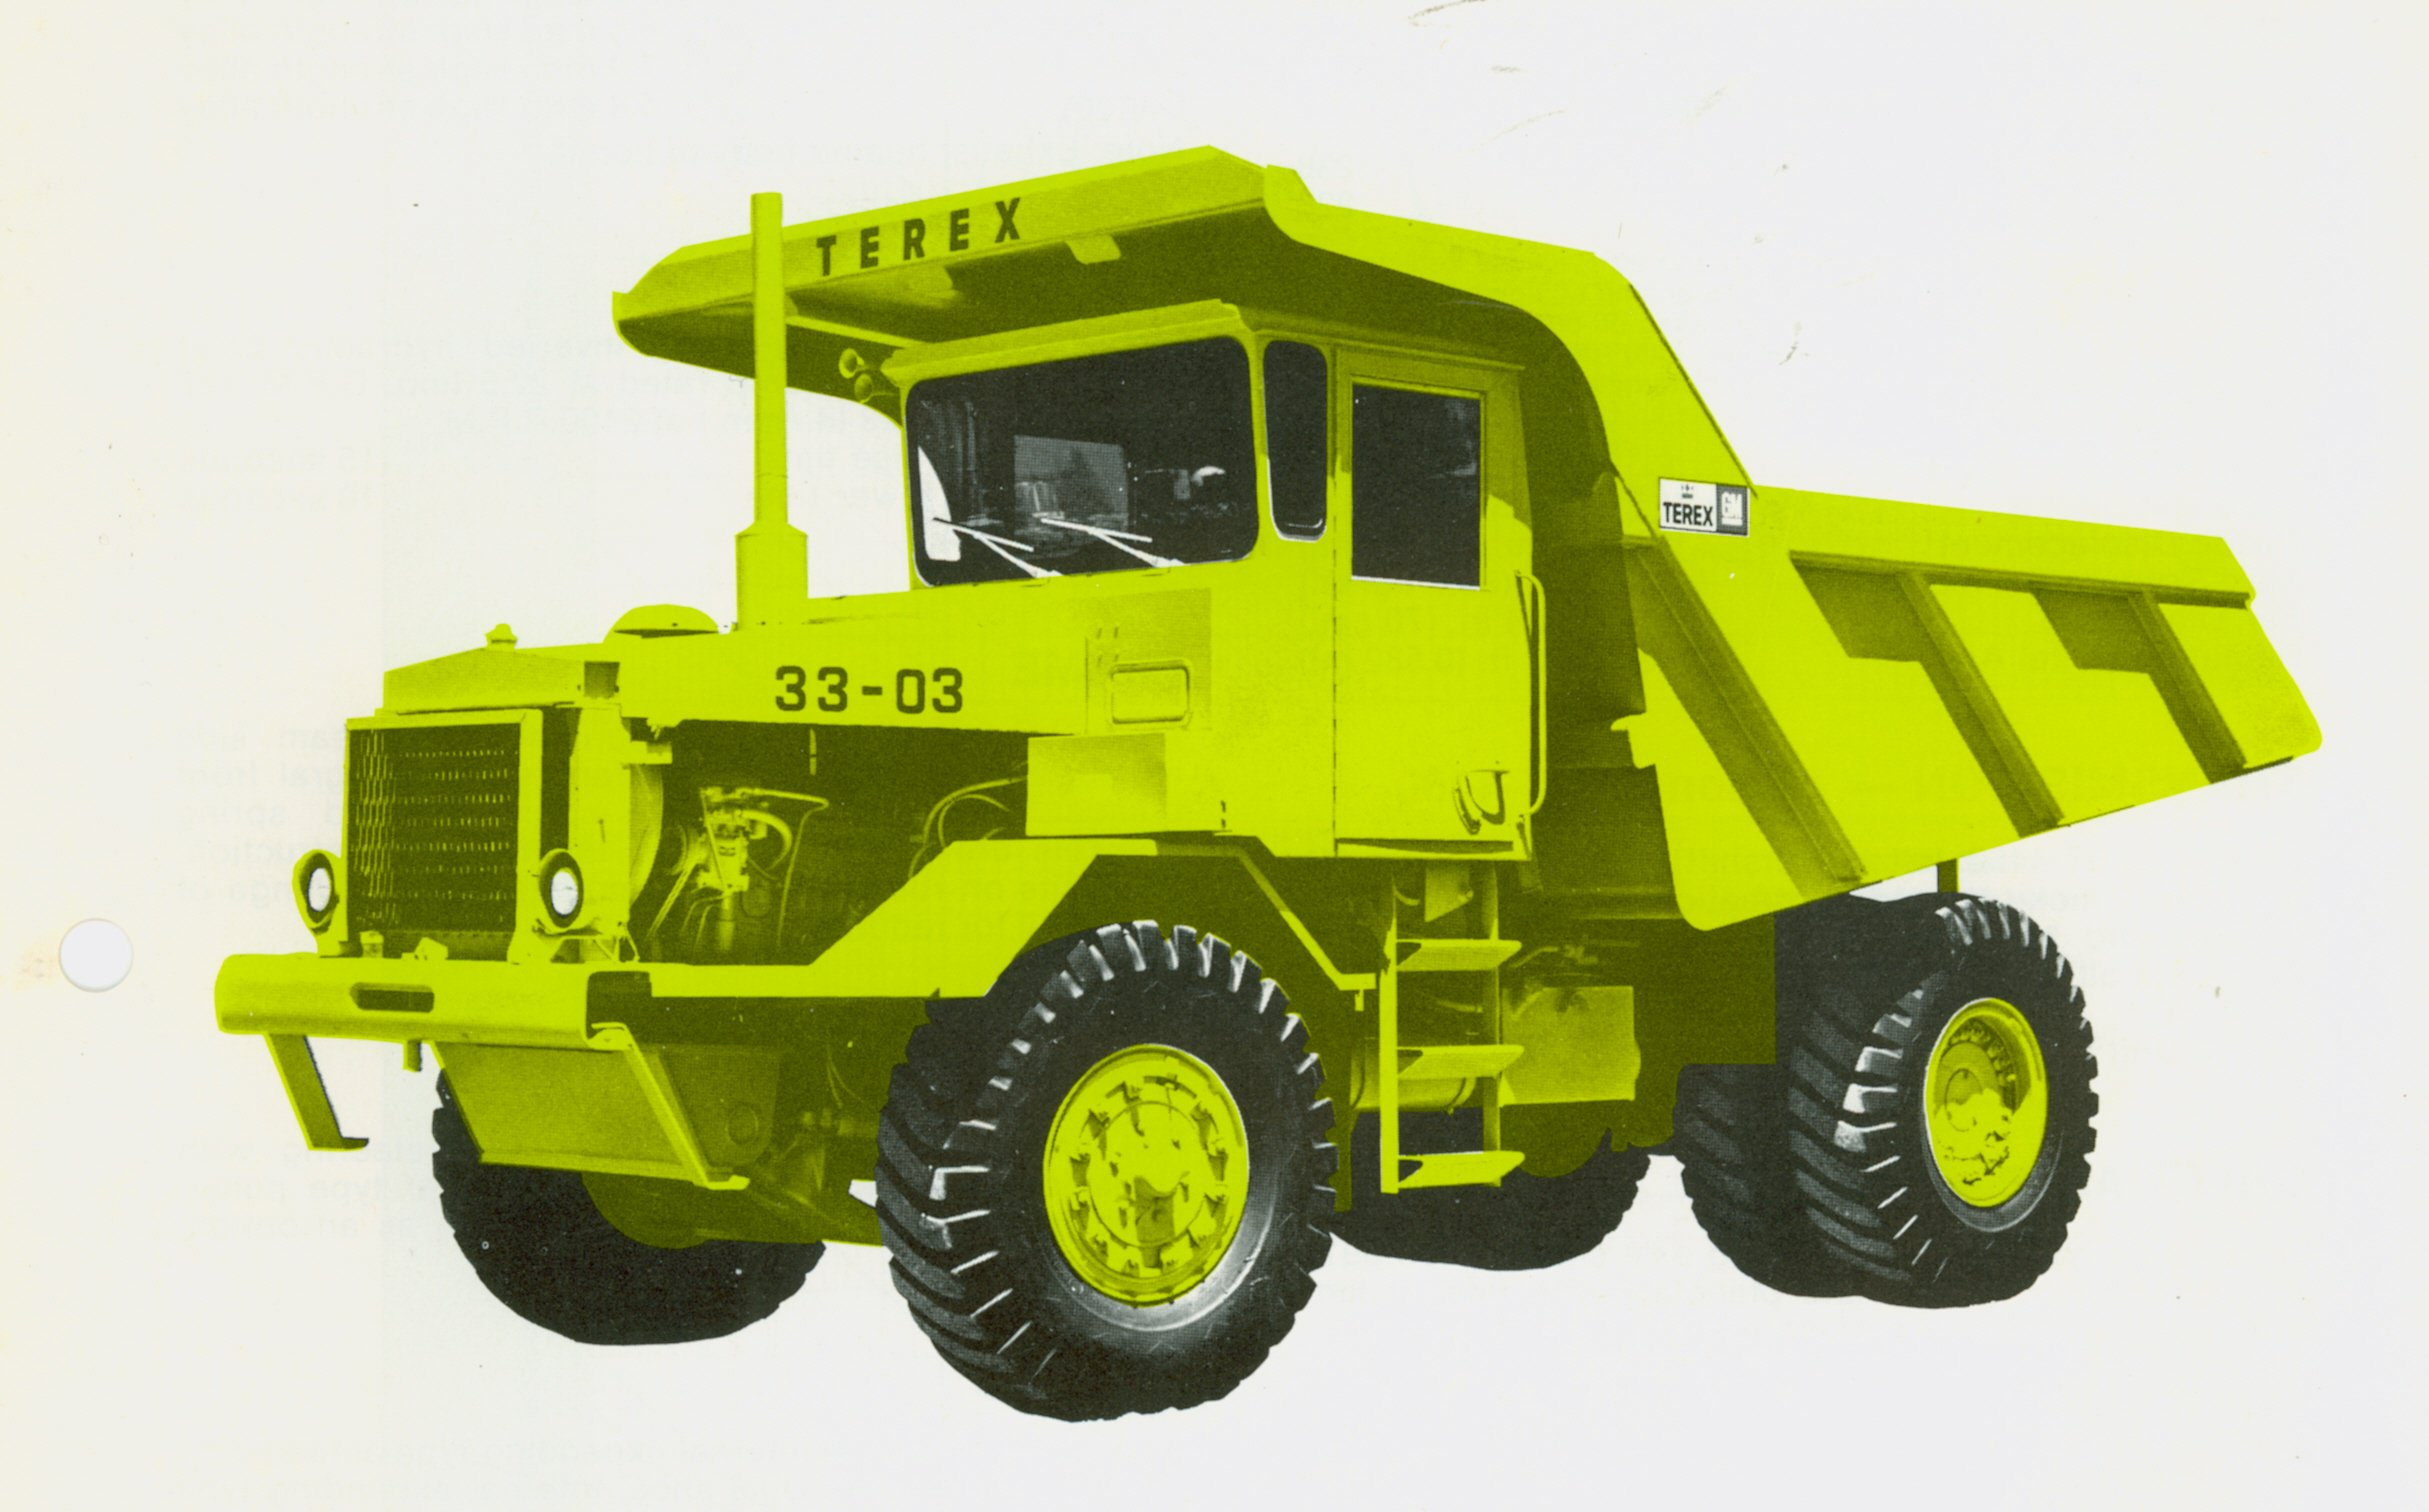 The Tangled Web of Euclid and Terex Truck History | Construction